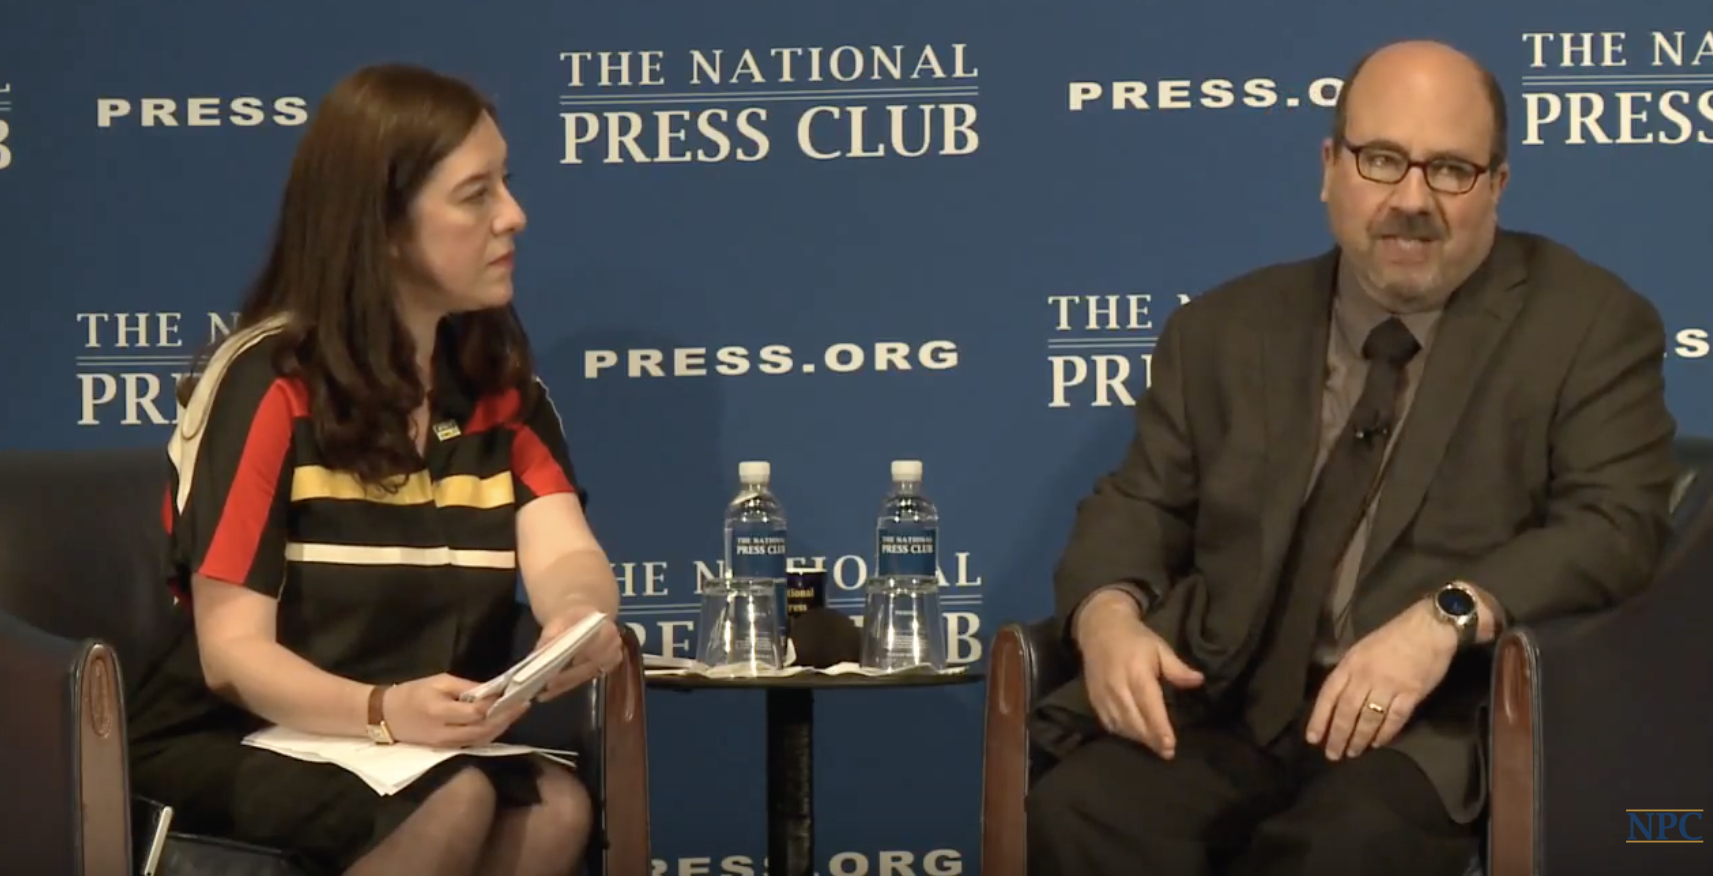 Craig Newmark Discusses Philanthropy and Investigative Journalism